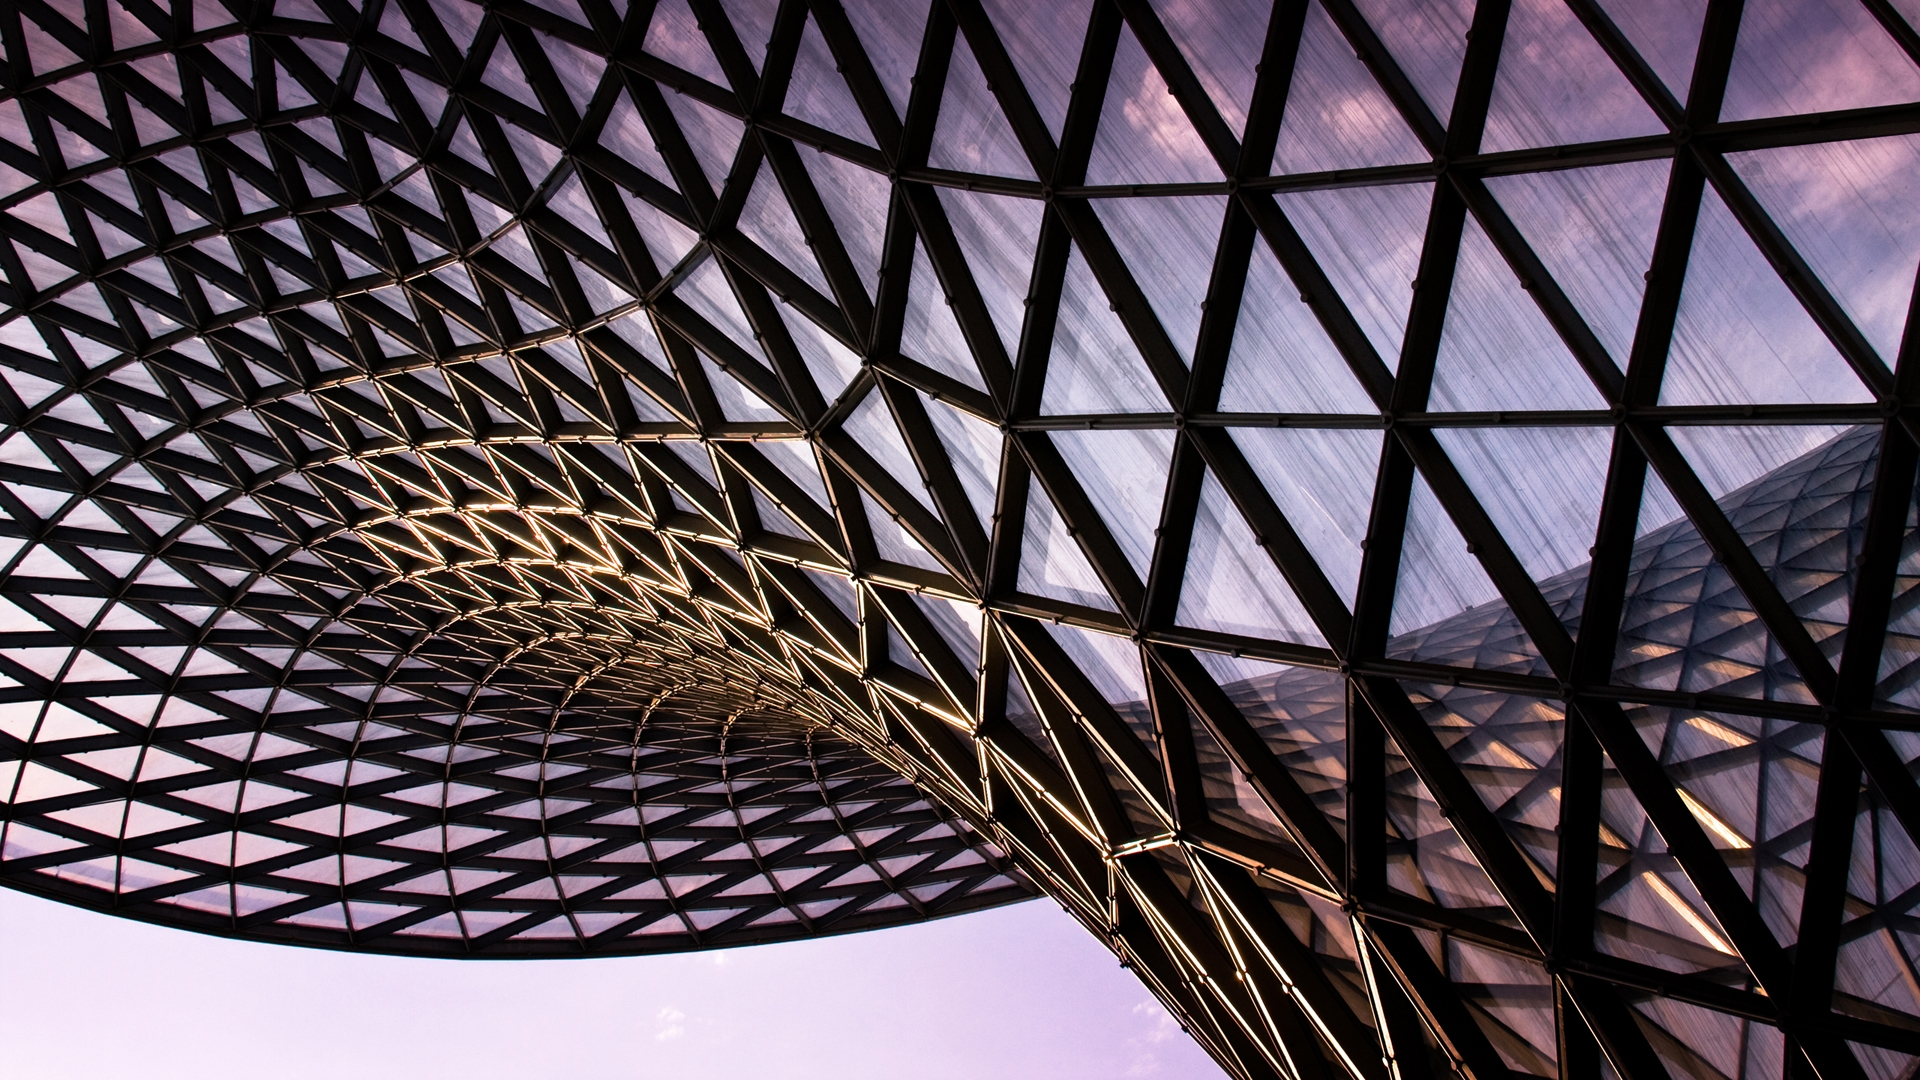 architecture-wallpapers_072029933_198